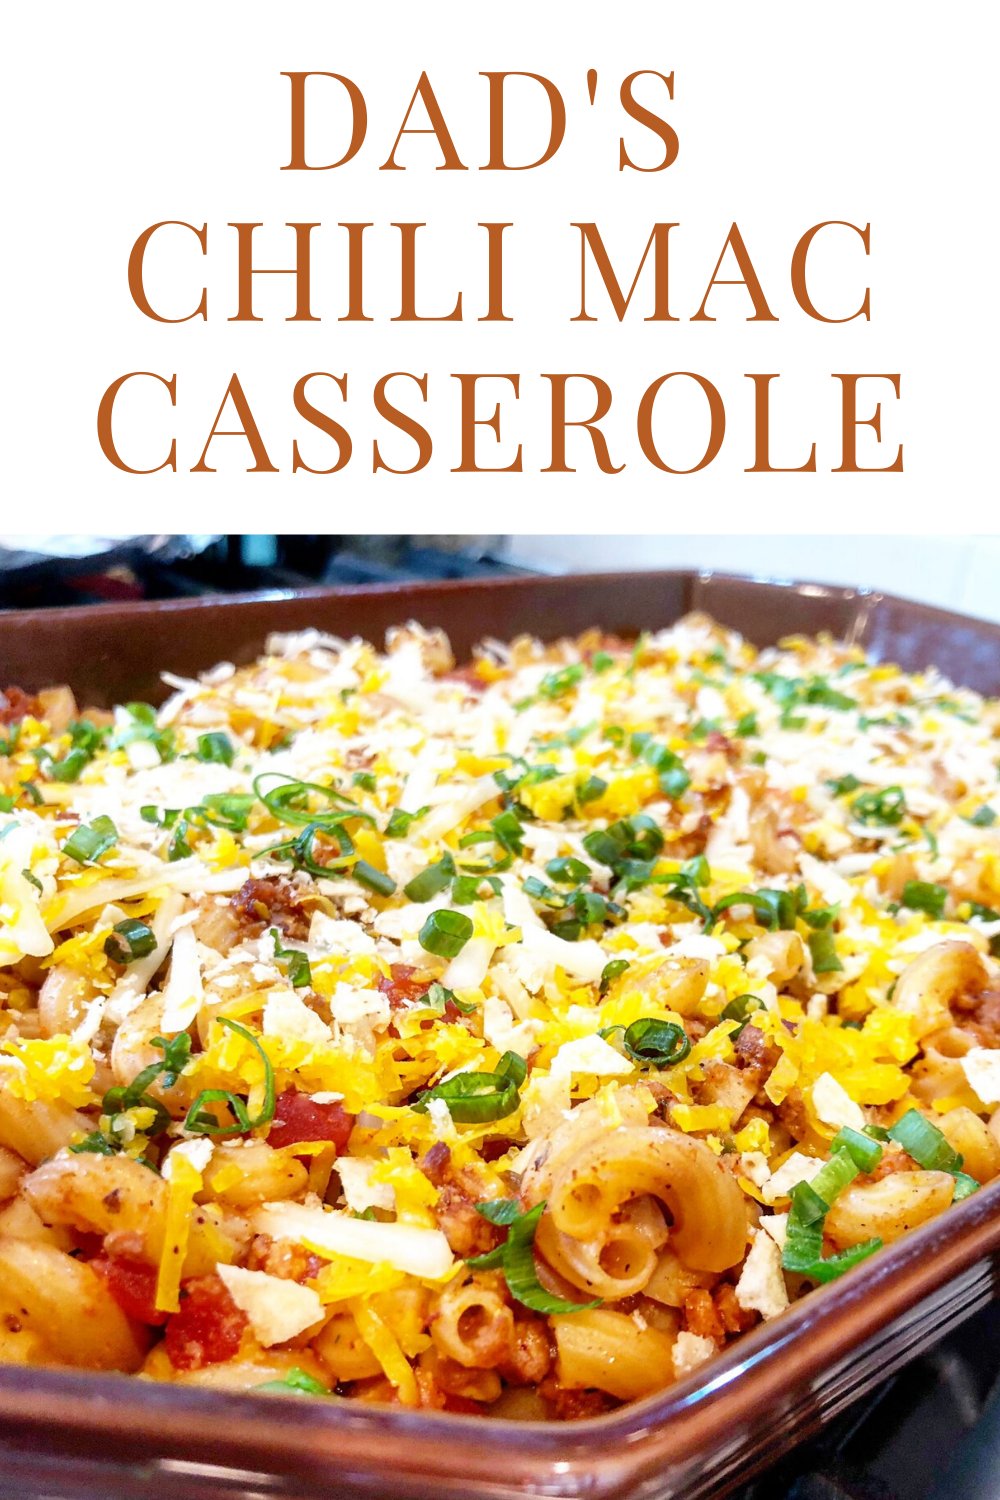 A classic chili mac made with all plant-based ingredients. This one is sure to become a family favorite! | thiswifecooks.com #veganrecipes #thiswifecooksrecipes #chilimac #plantbasedcasserole #plantbaseddinner #easypastadinner via @thiswifecooks